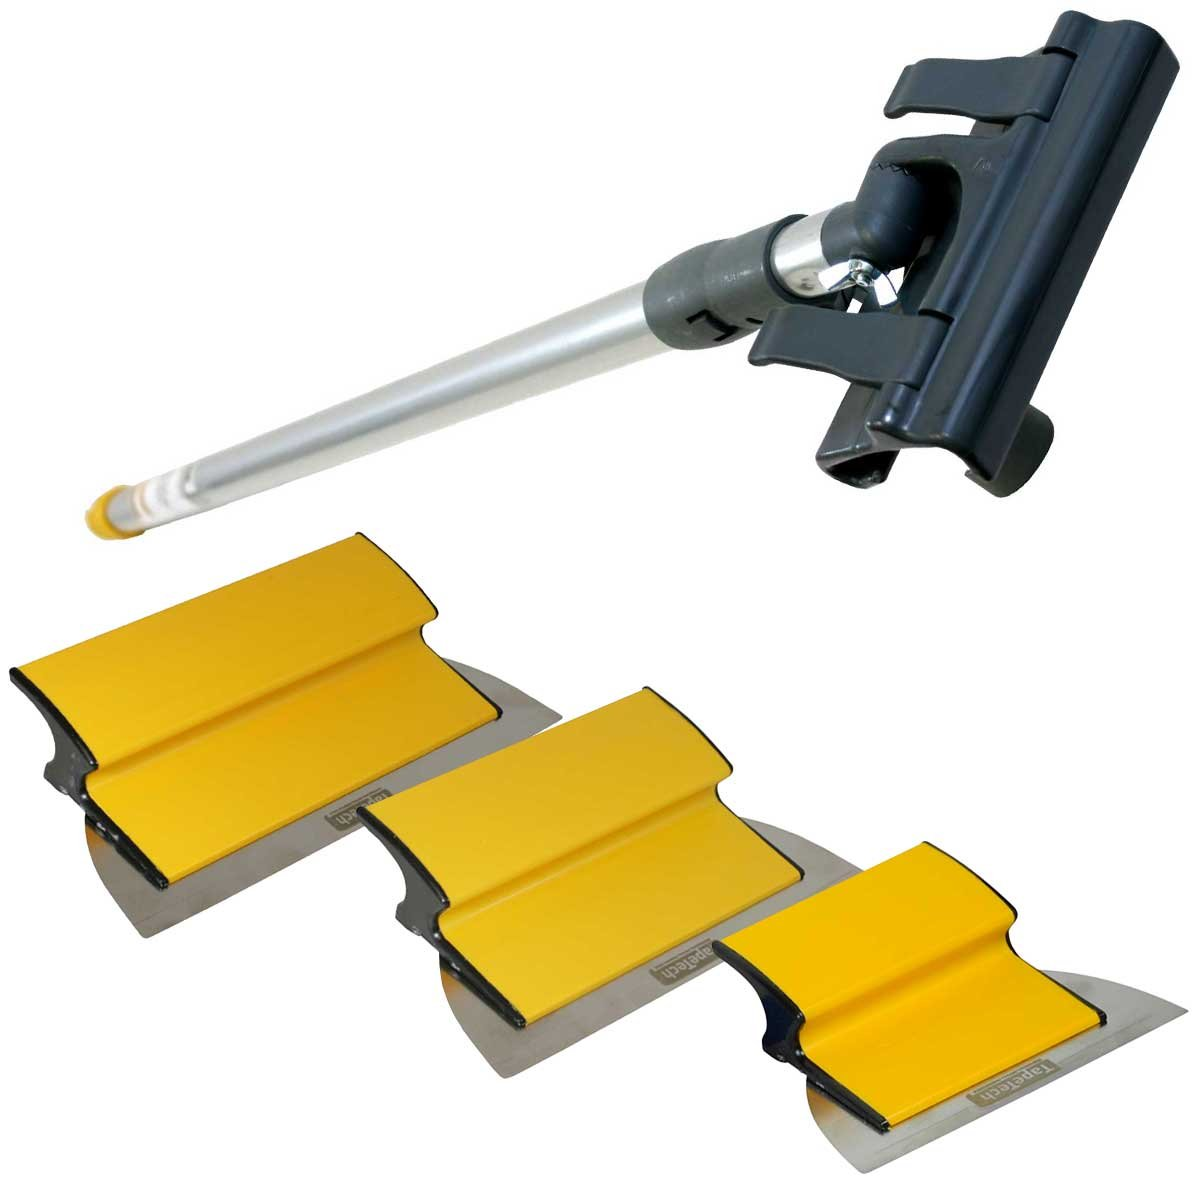 TapeTech Drywall Finishing Tool Smoothing Blade / Wipe Down Knife Triple Combo Set with Handle 7'' - 10'' - 12'' by TapeTech